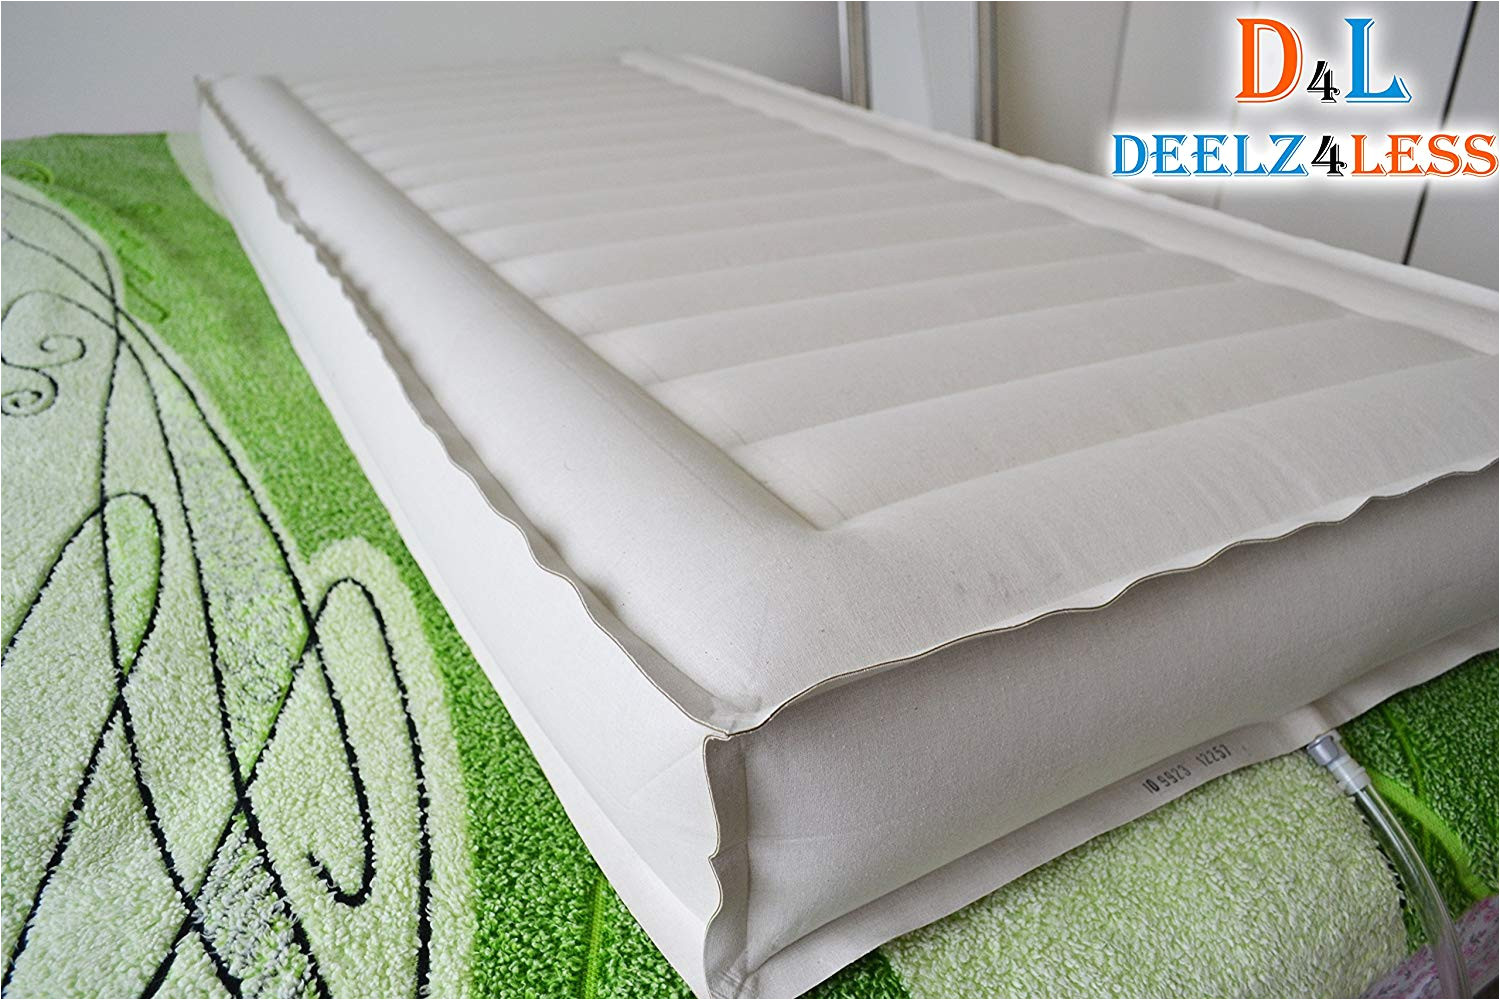 Sleep Number Bed Limited Edition | AdinaPorter